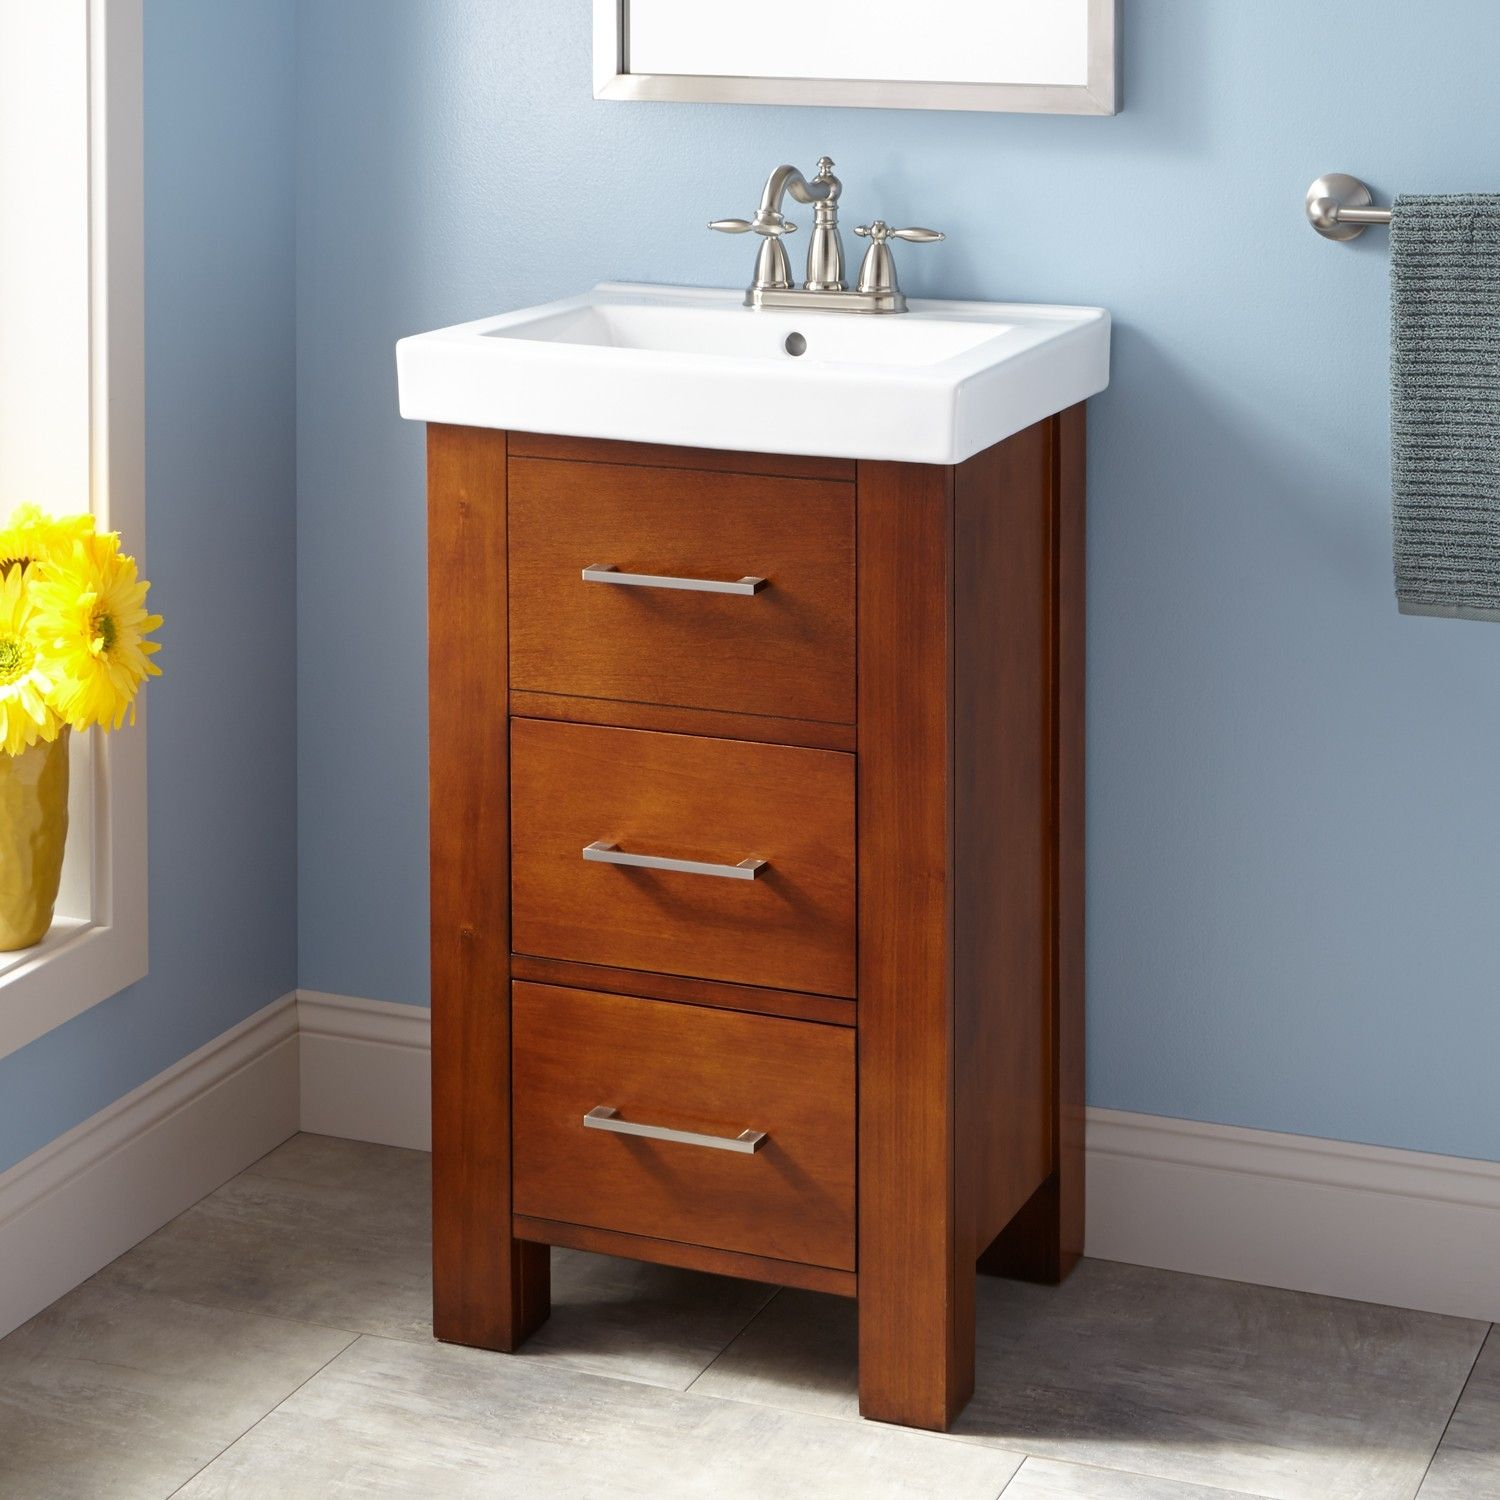 20 Inch Bathroom Vanity Ikea When It Comes Time For You To